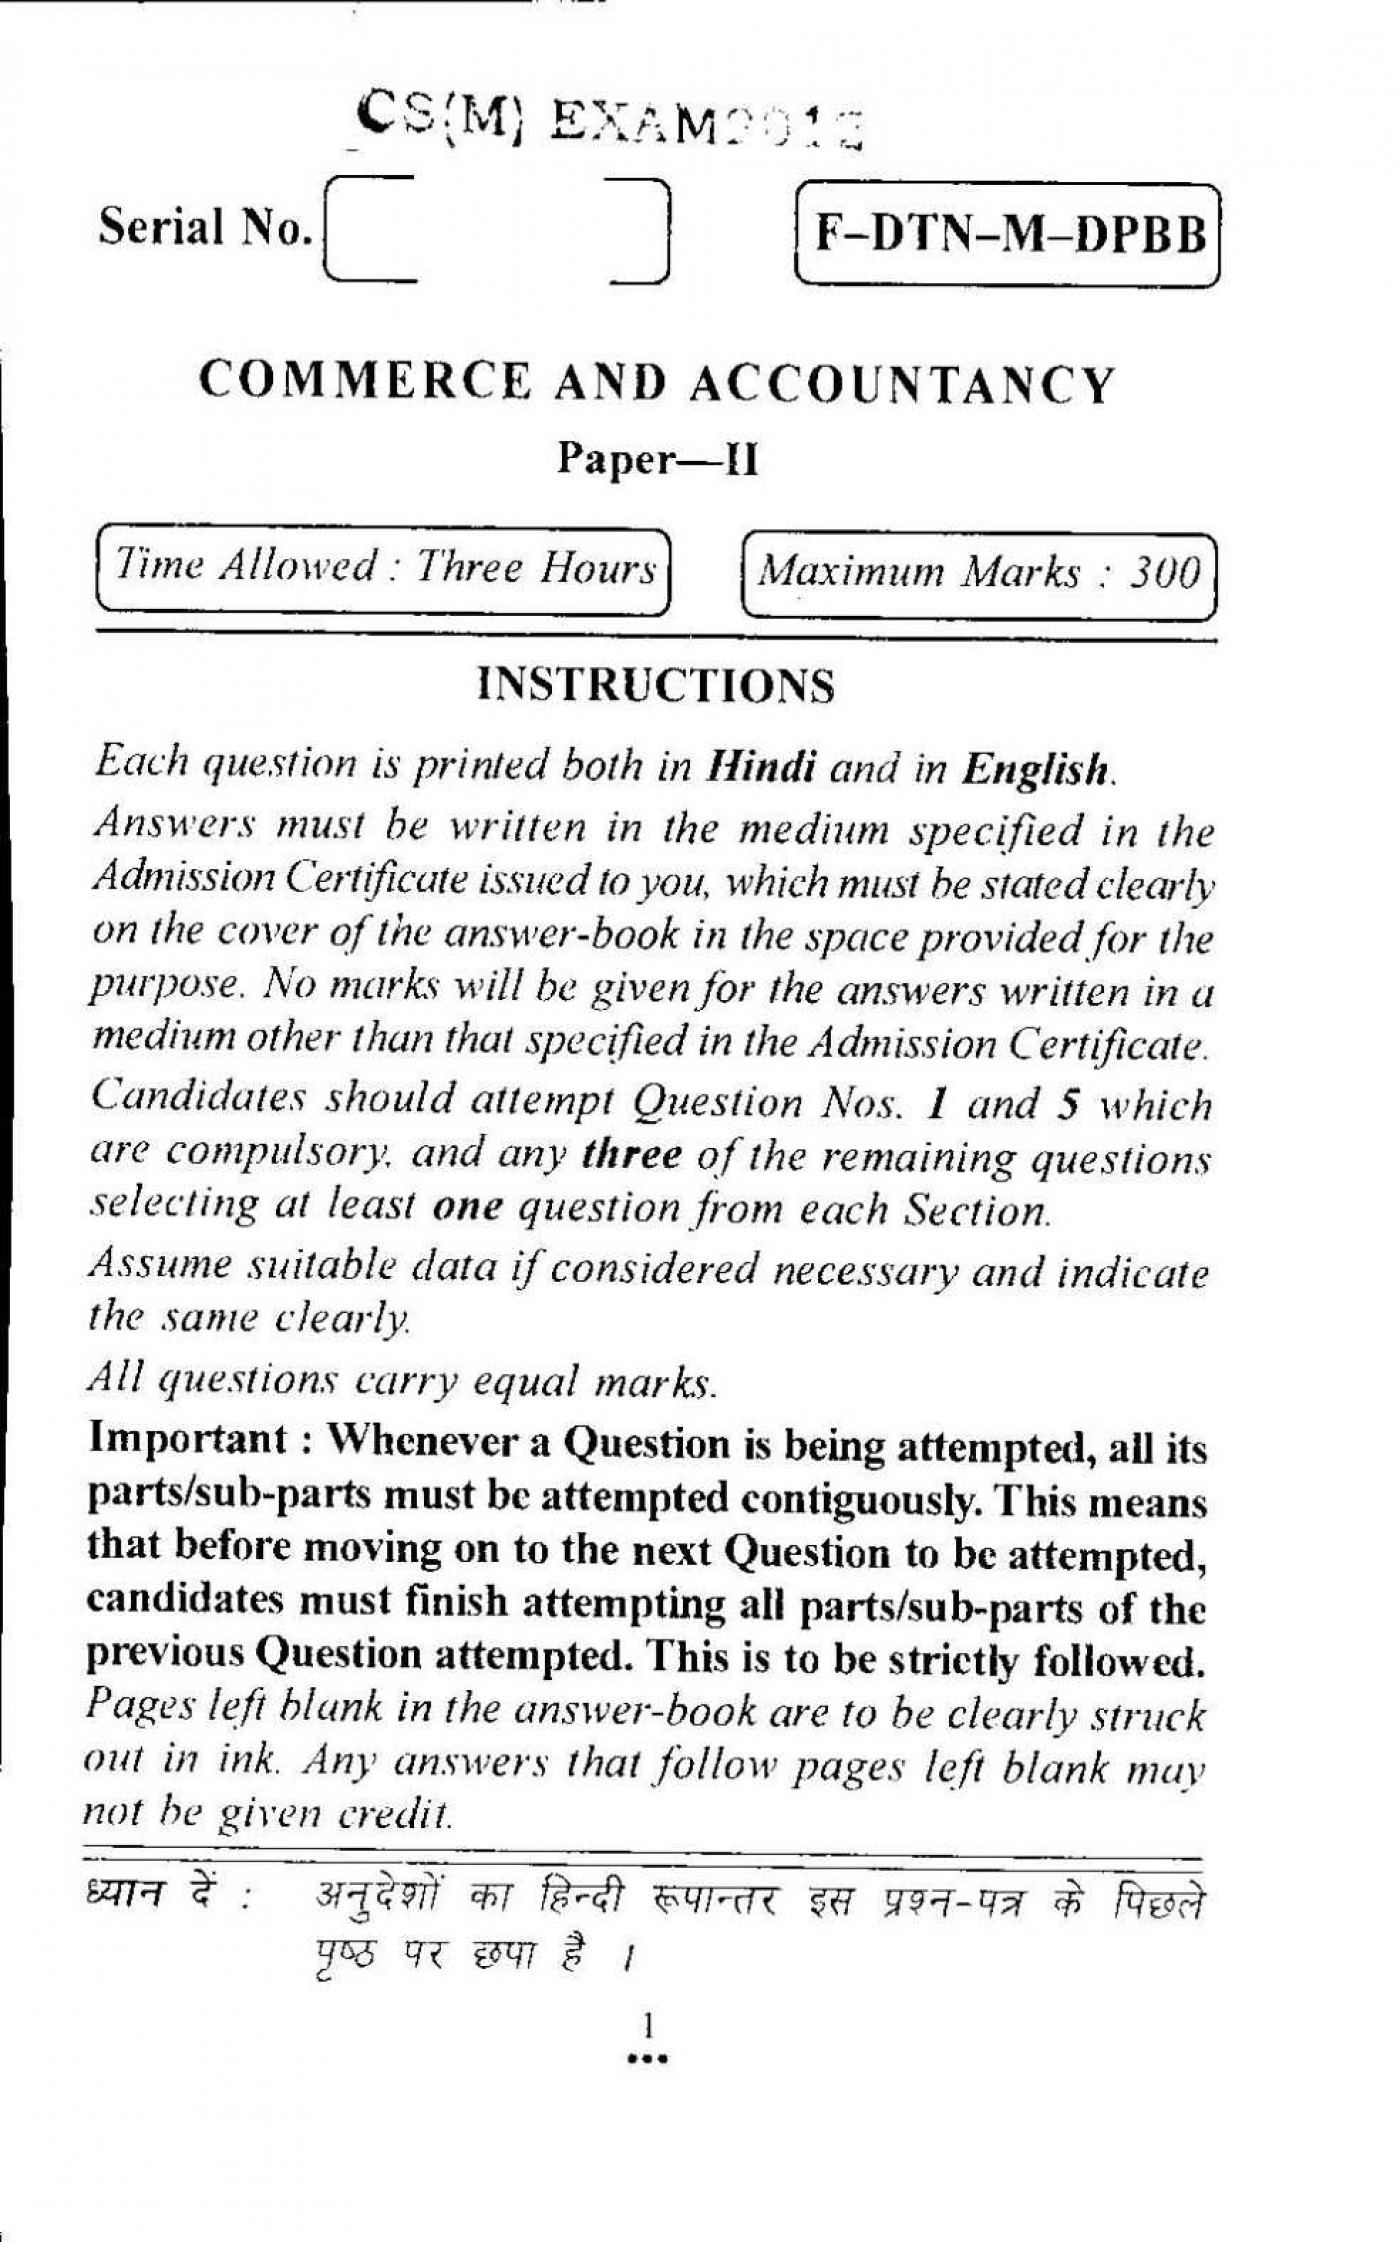 007 Racism Today Essay Civil Services Examination Commerce And Accountancy Paper Ii Previous Years Que Dreaded 1400